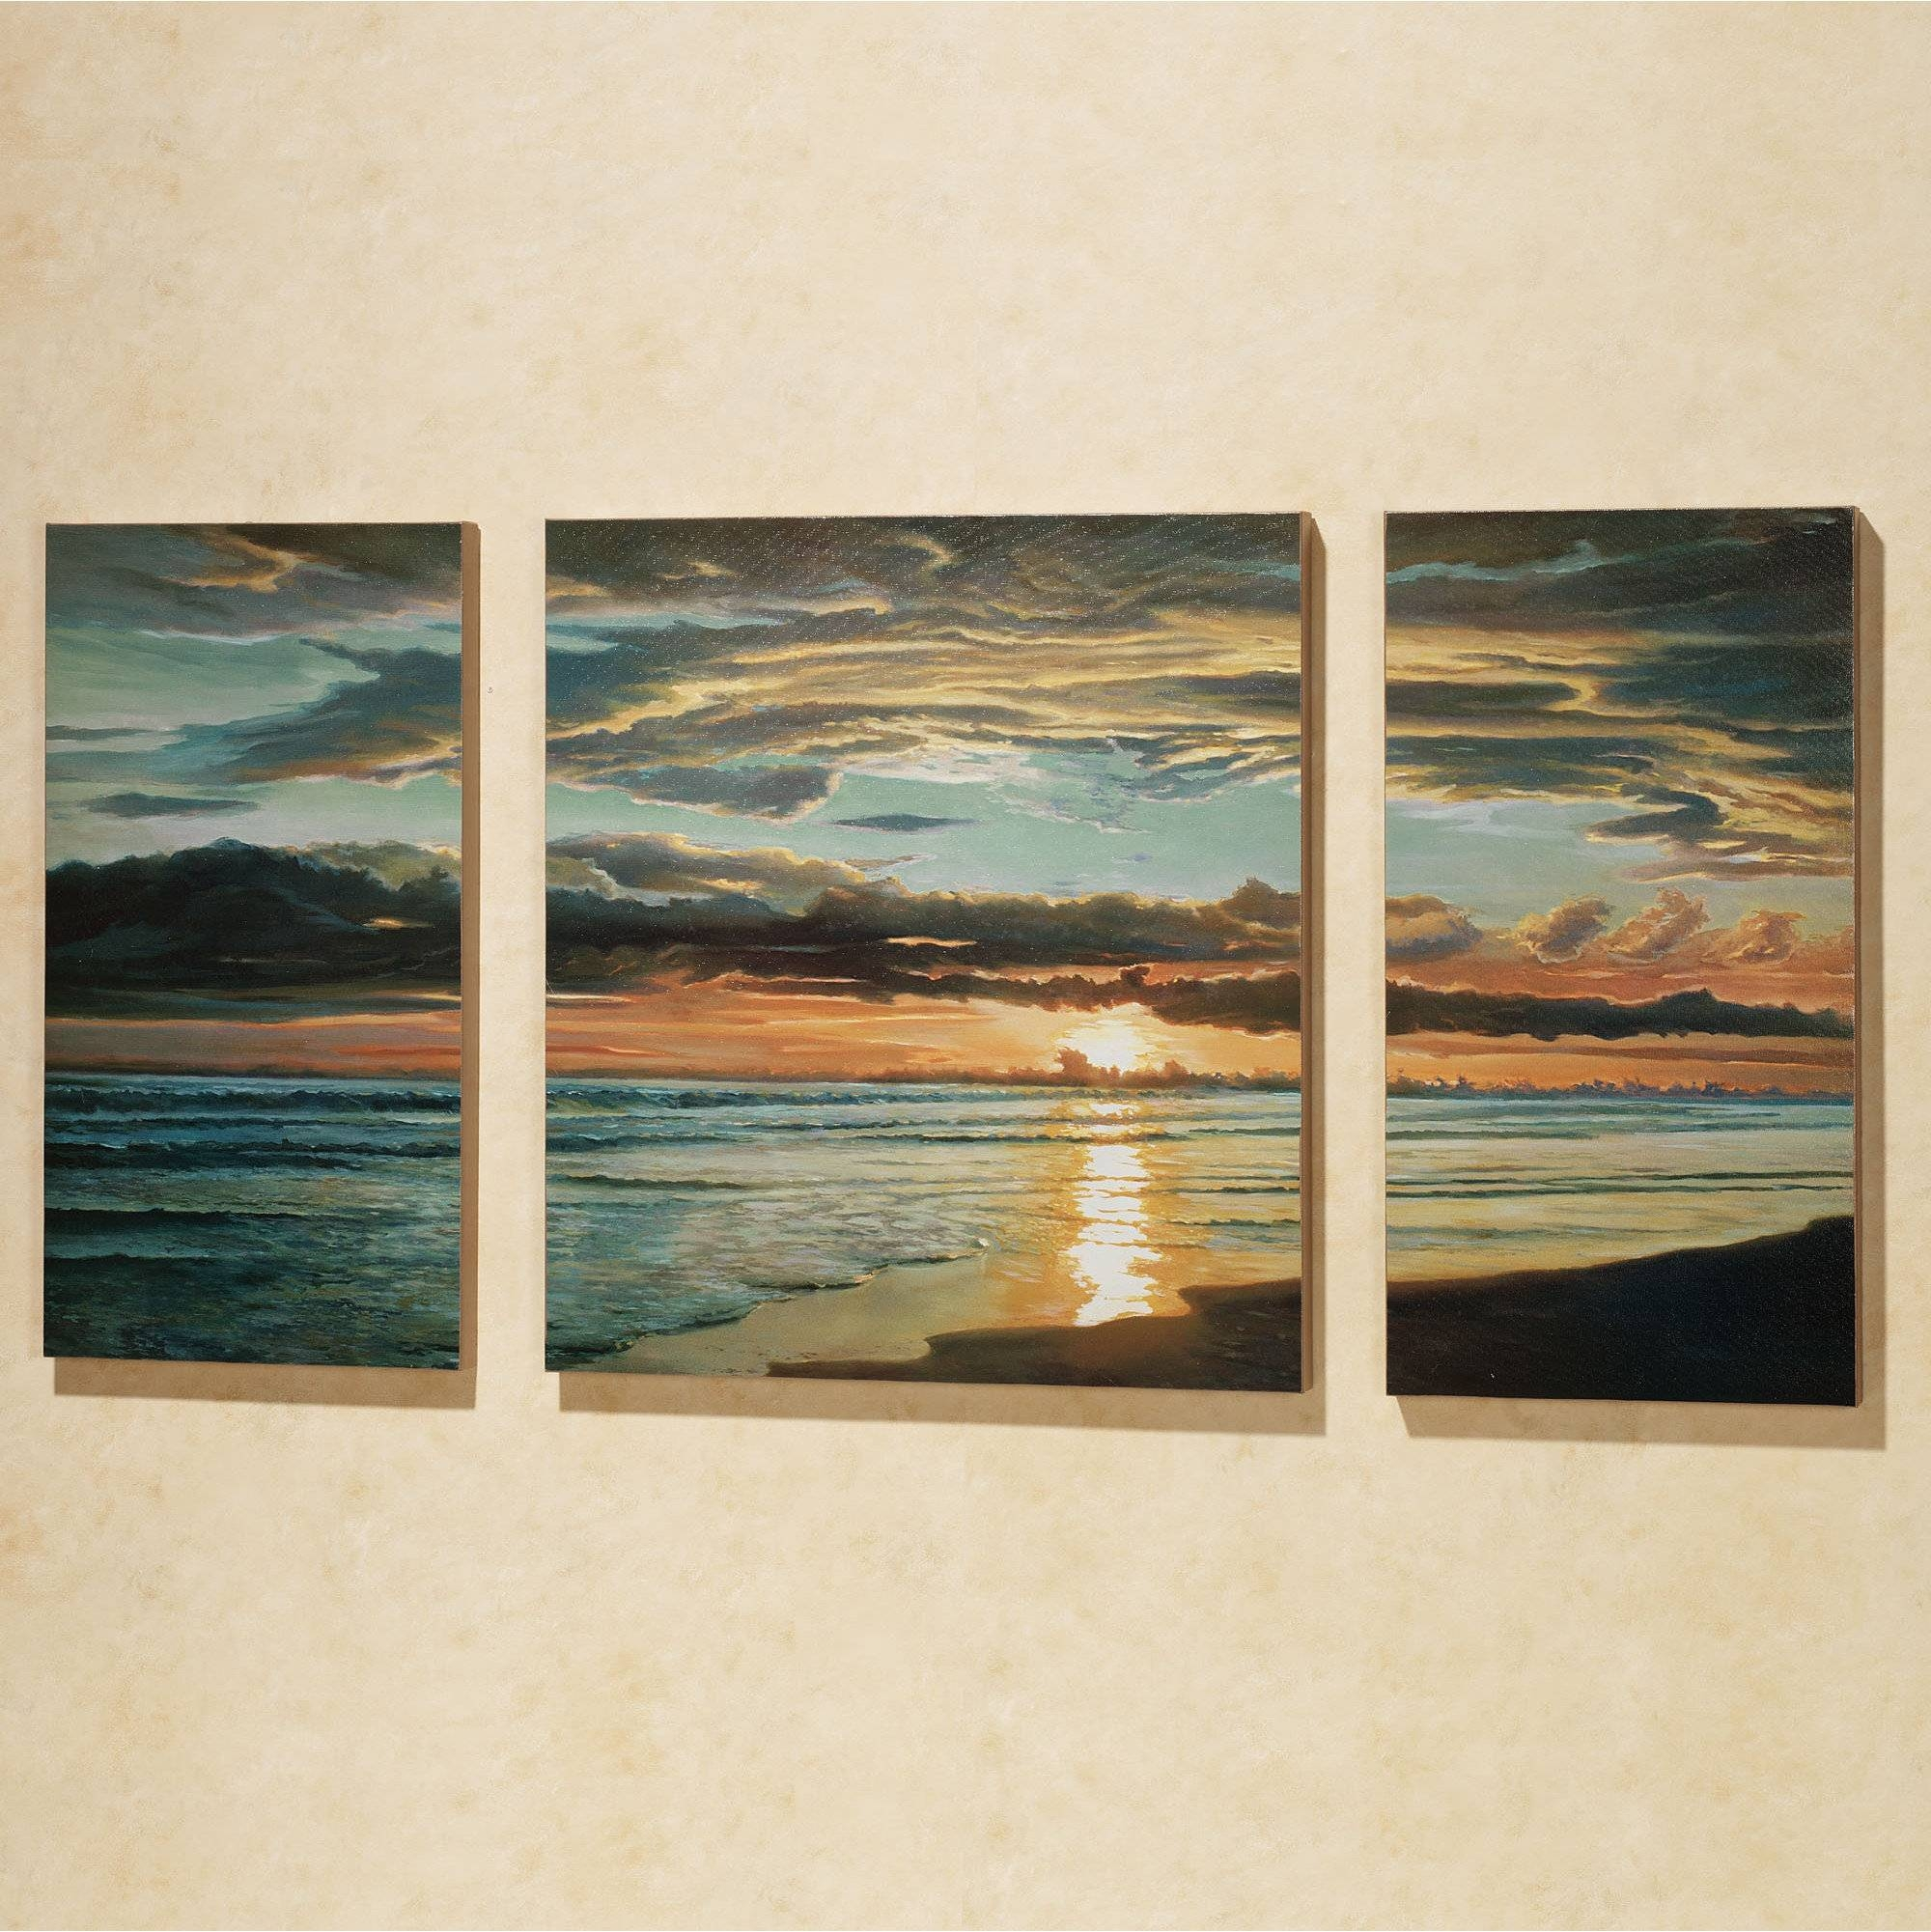 Wall Art Designs: Prints Canvas Triptych Wall Art Sale Large Metal Pertaining To Recent Large Canvas Wall Art Sets (View 14 of 15)